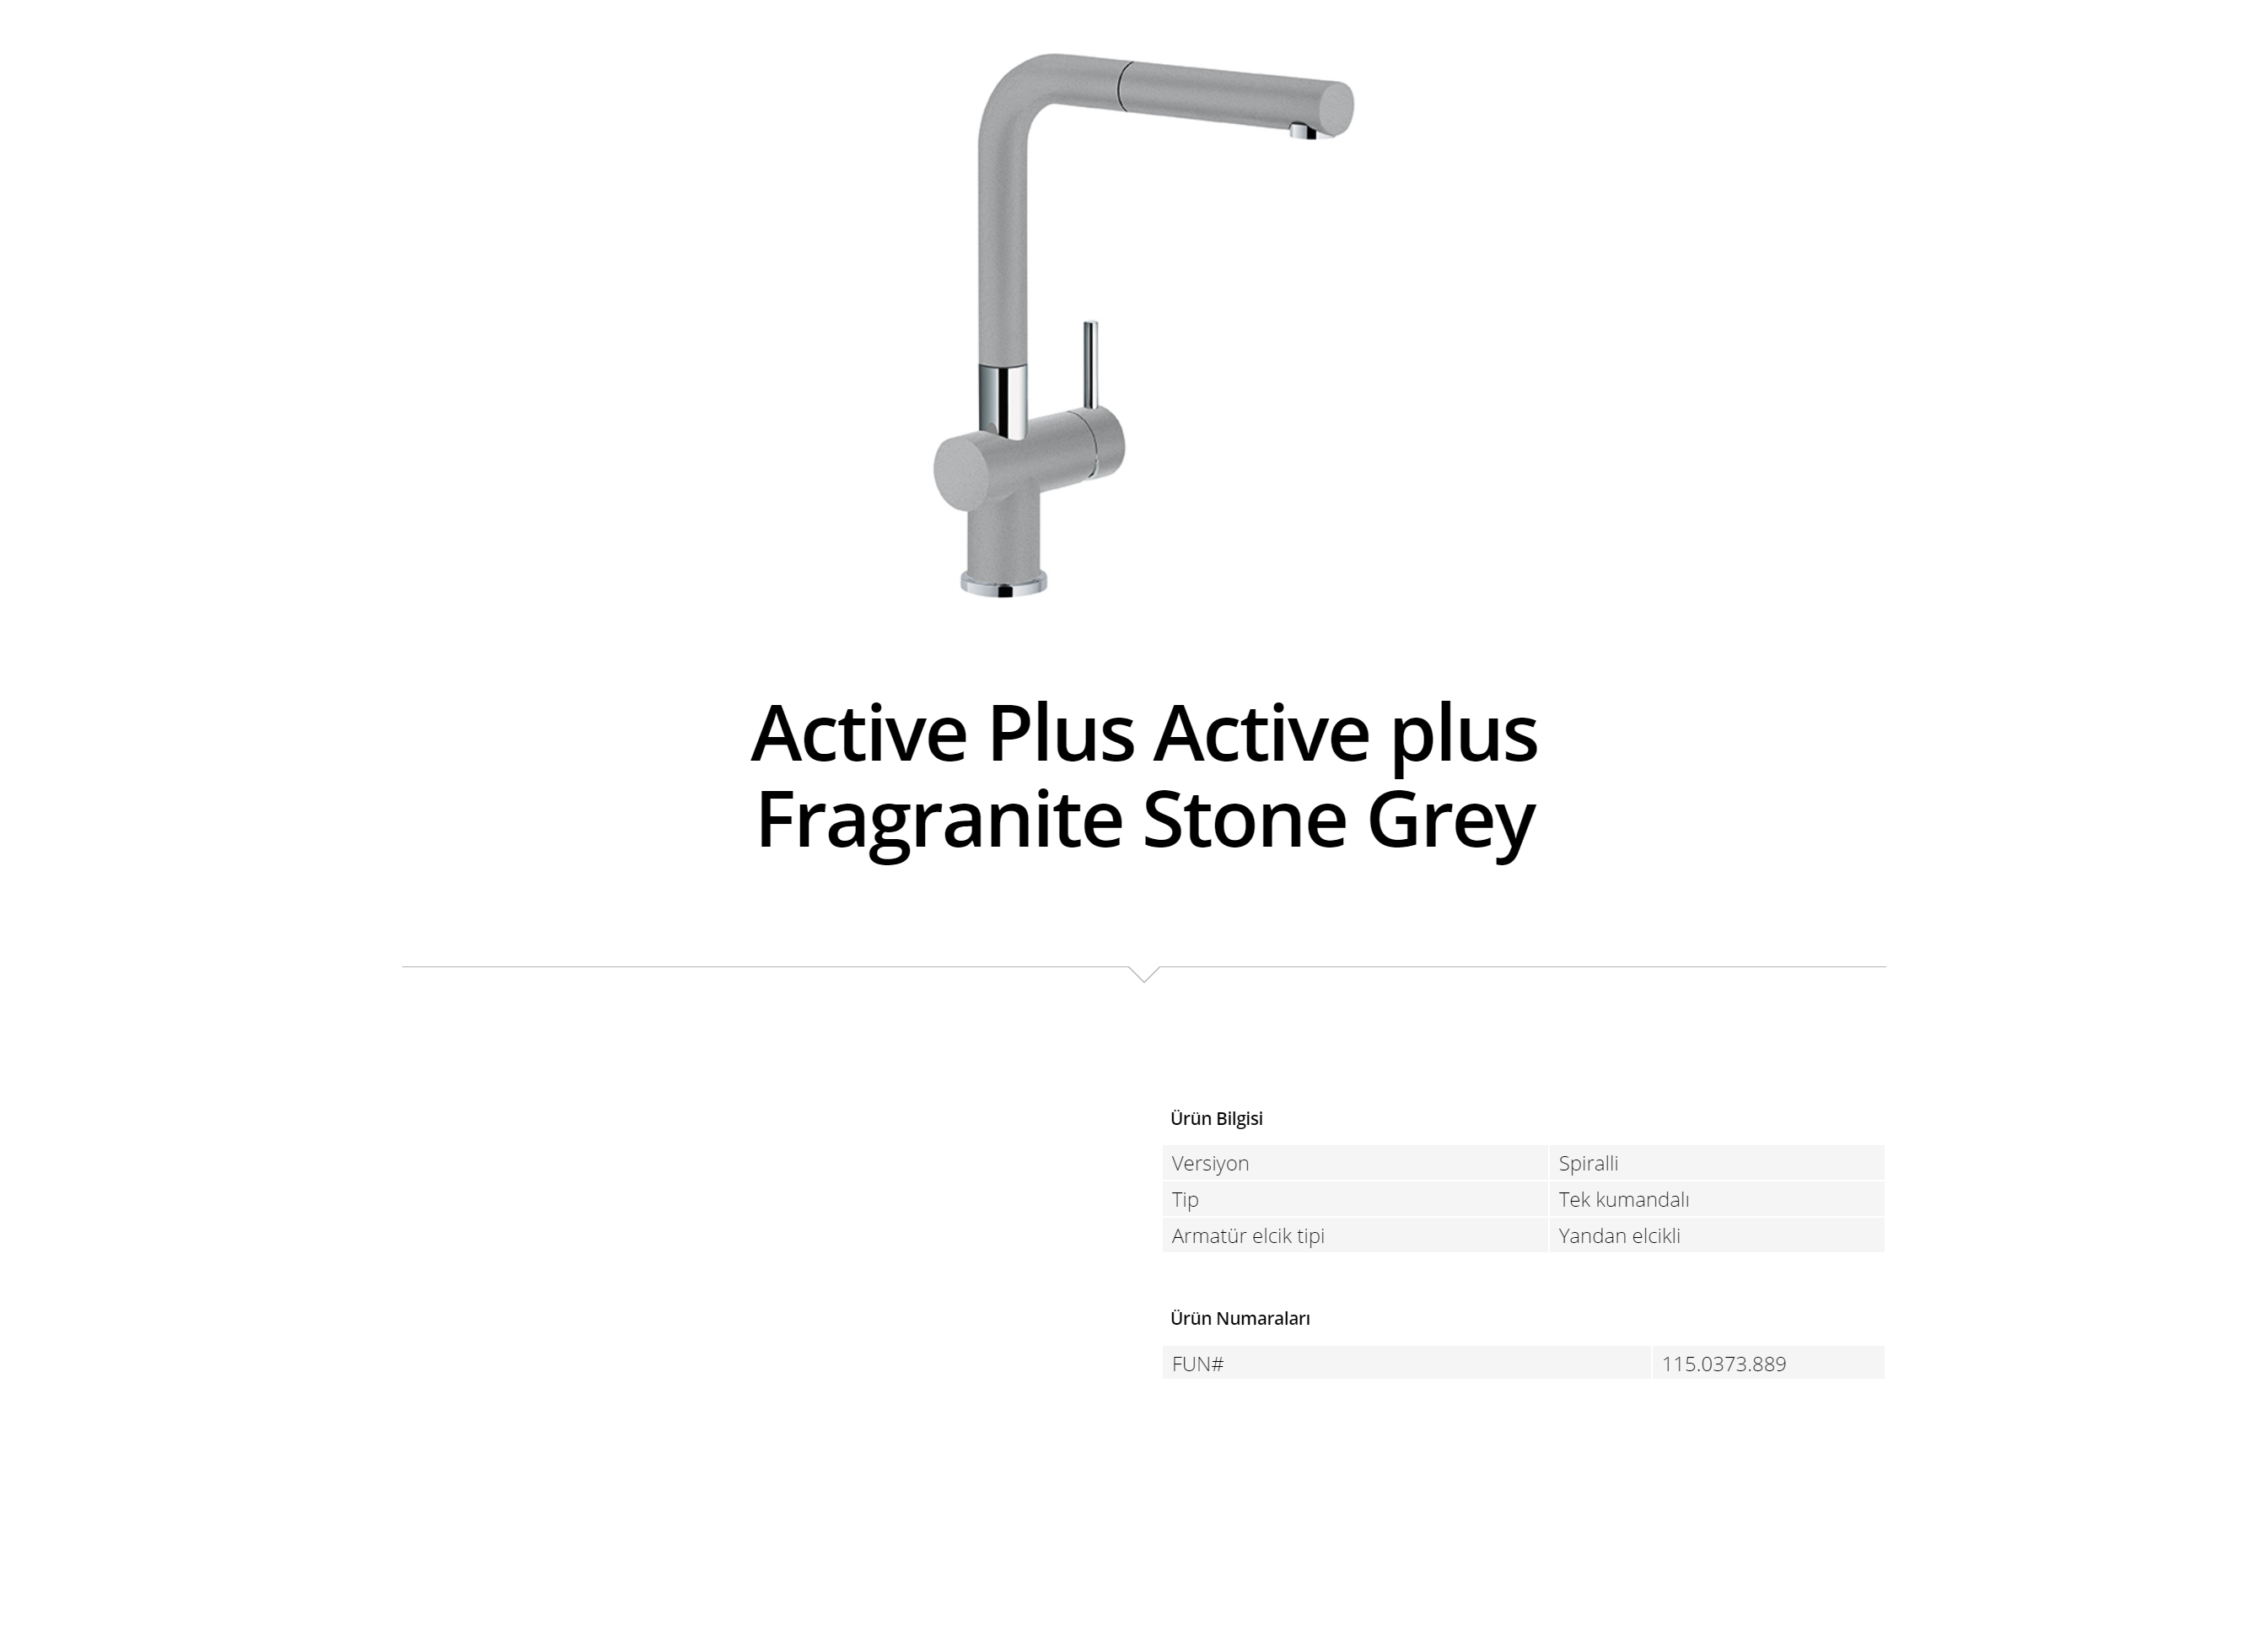 Active plus Fragranite Stone Grey